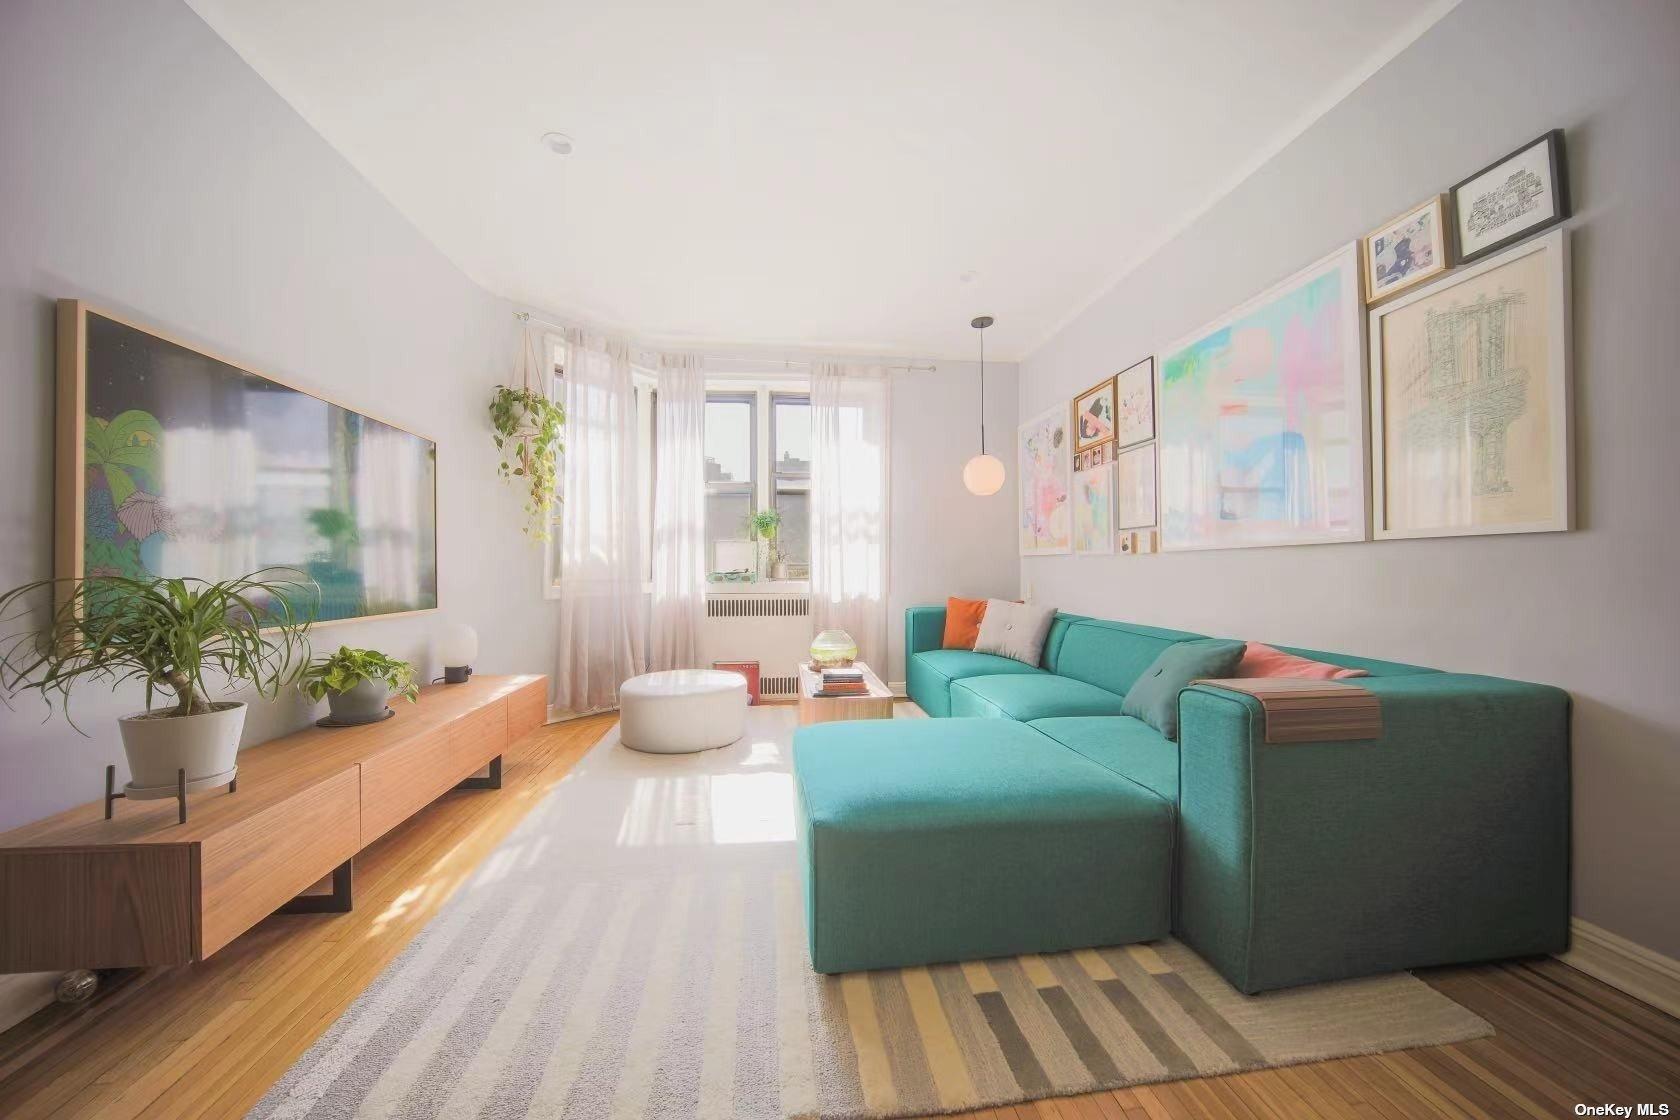 69-40 YELLOWSTONE BOULEVARD #412, FOREST HILLS, NY 11375